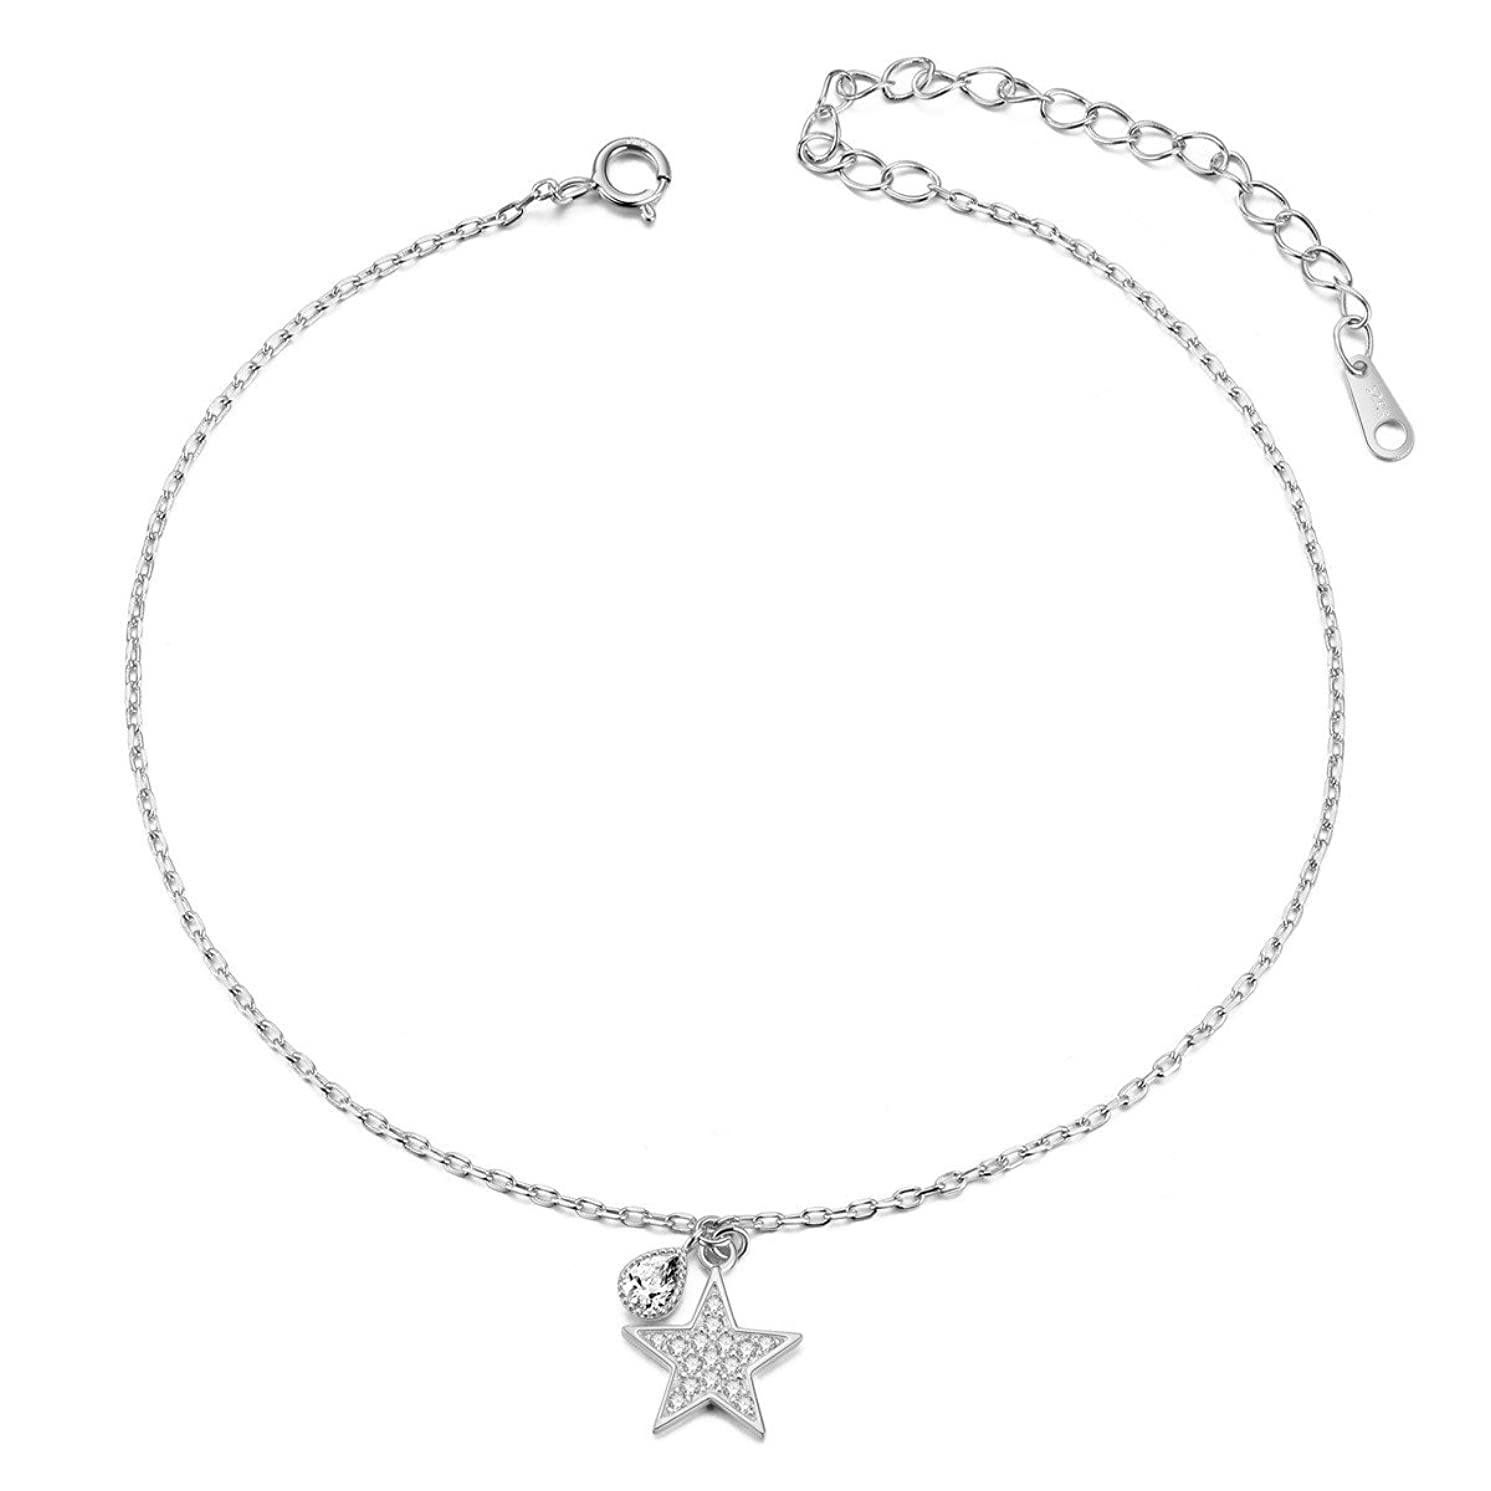 SHEGRACE Star and Moon Anklet,925 Sterling Silver Charms Anklet Bracelet for Women Beach, Casual